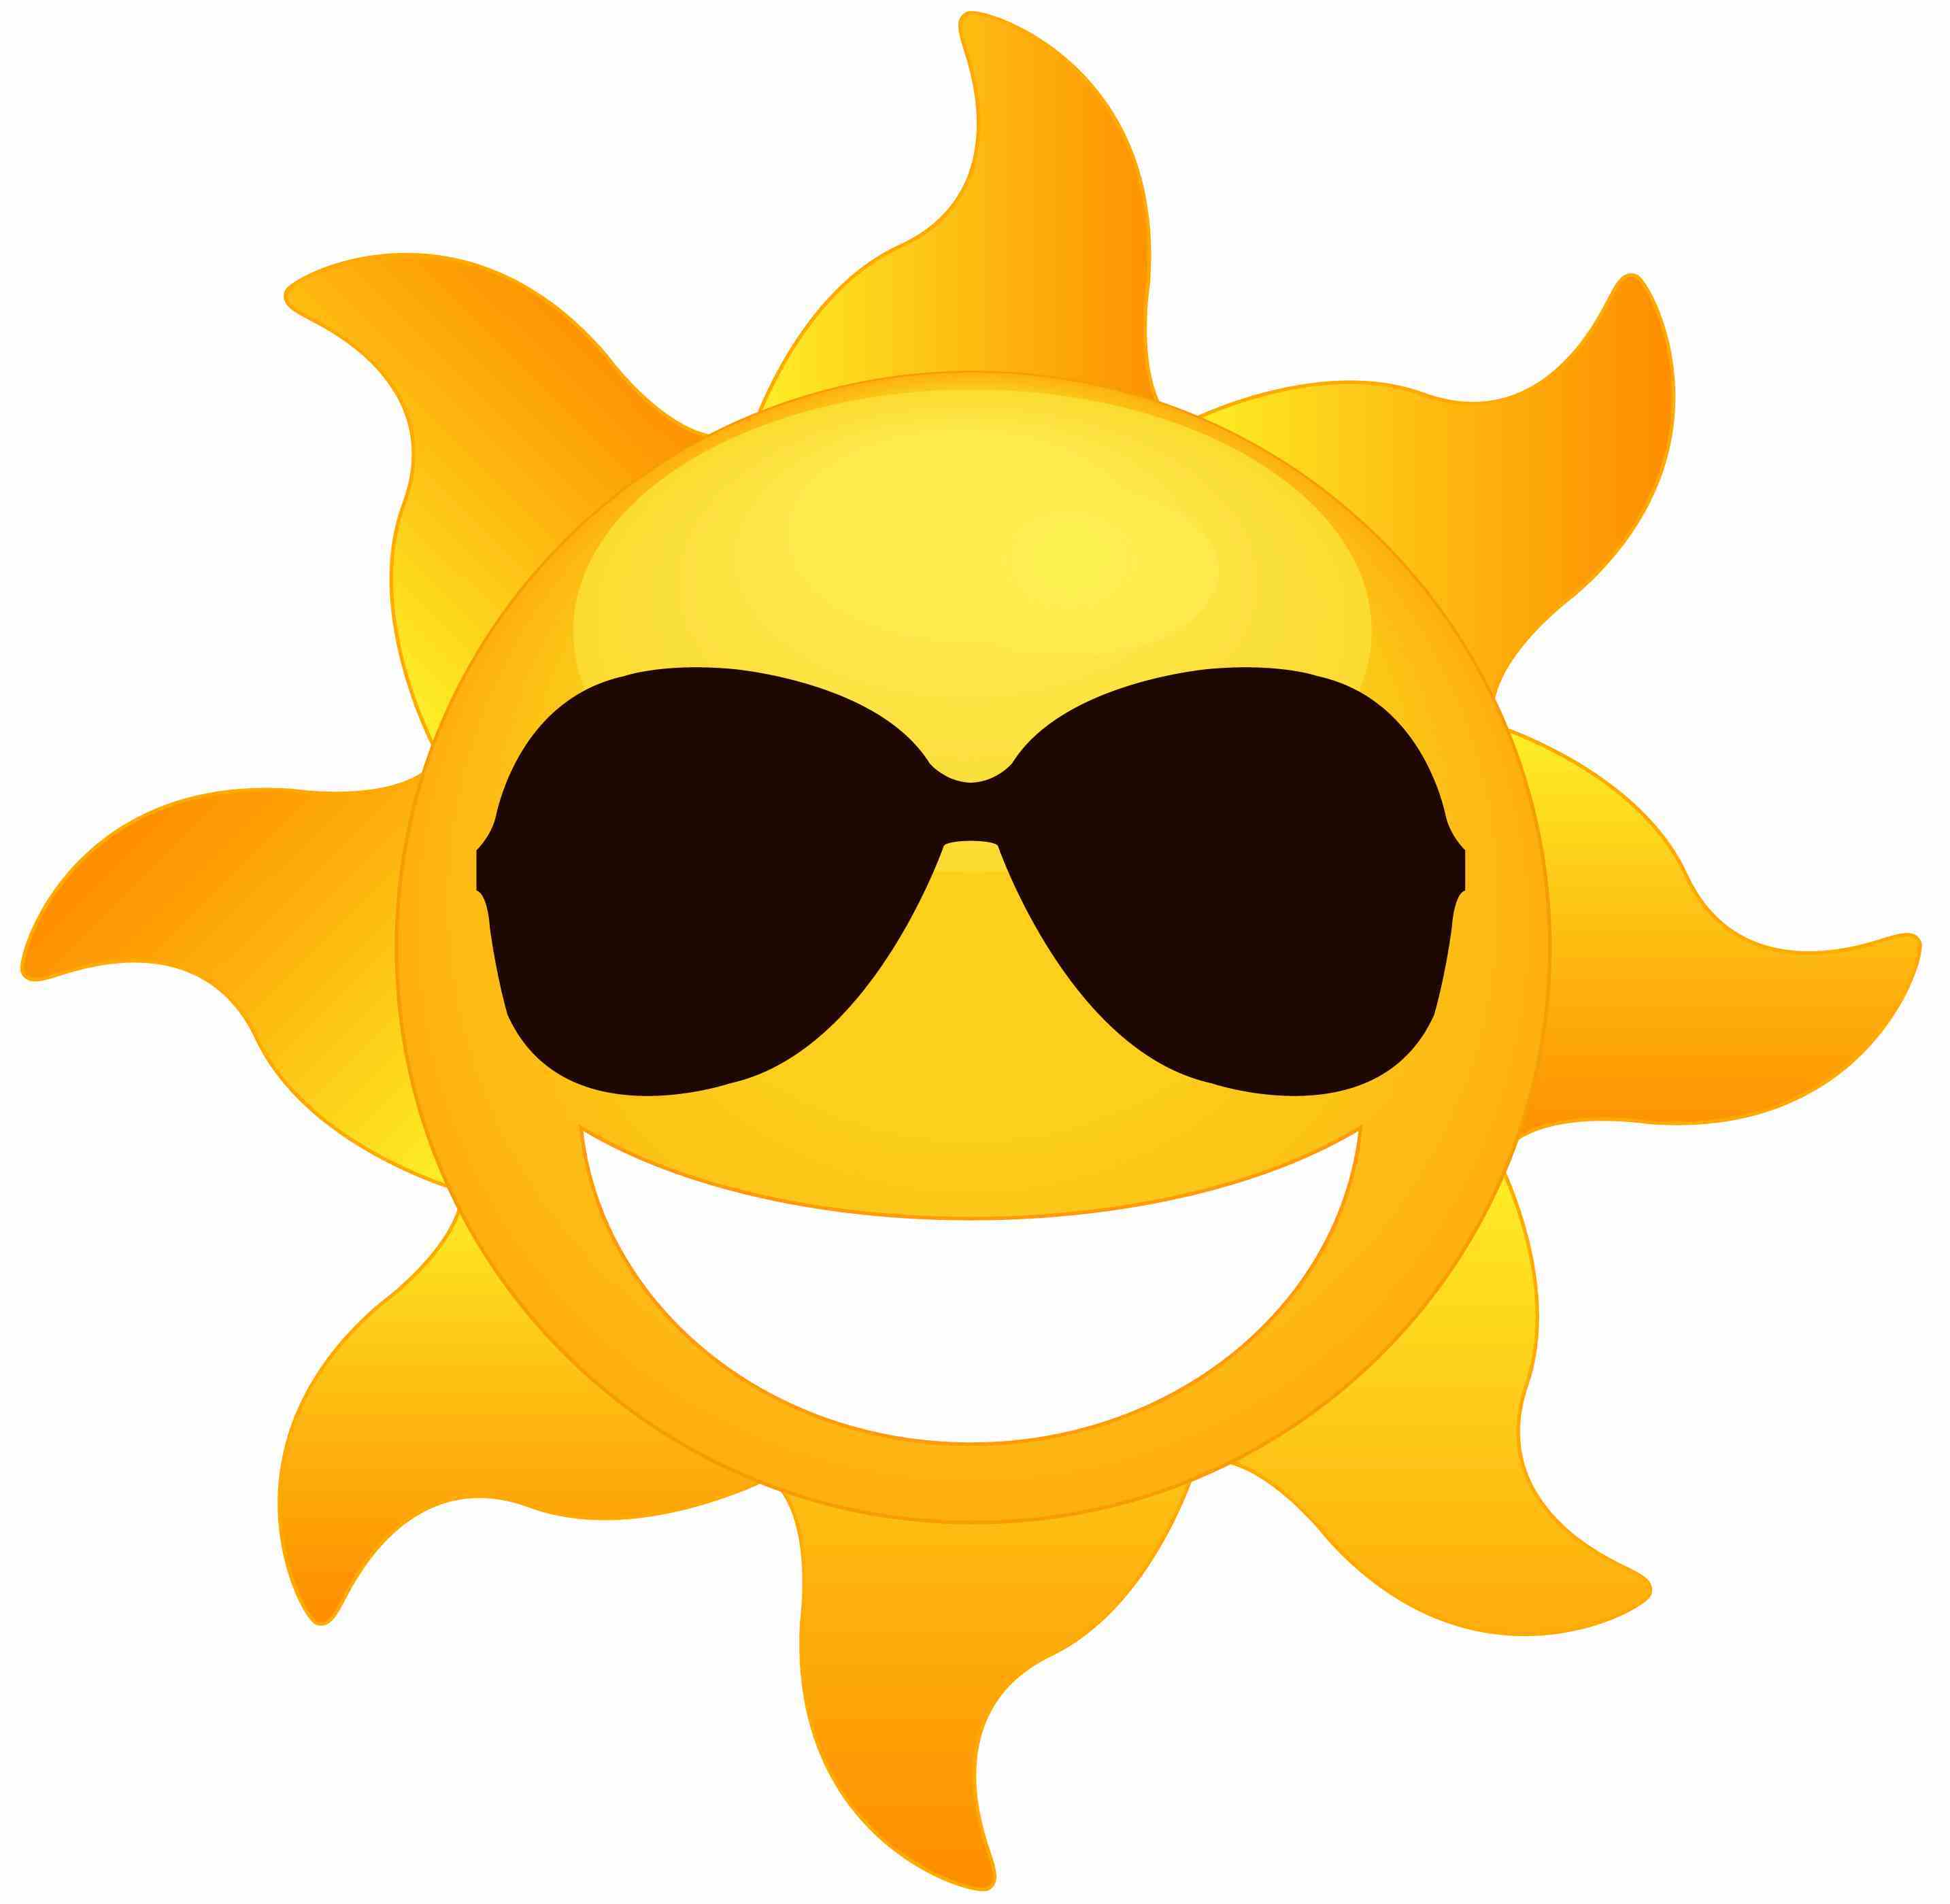 Sun Wearing Sunglasses Coloring Page.